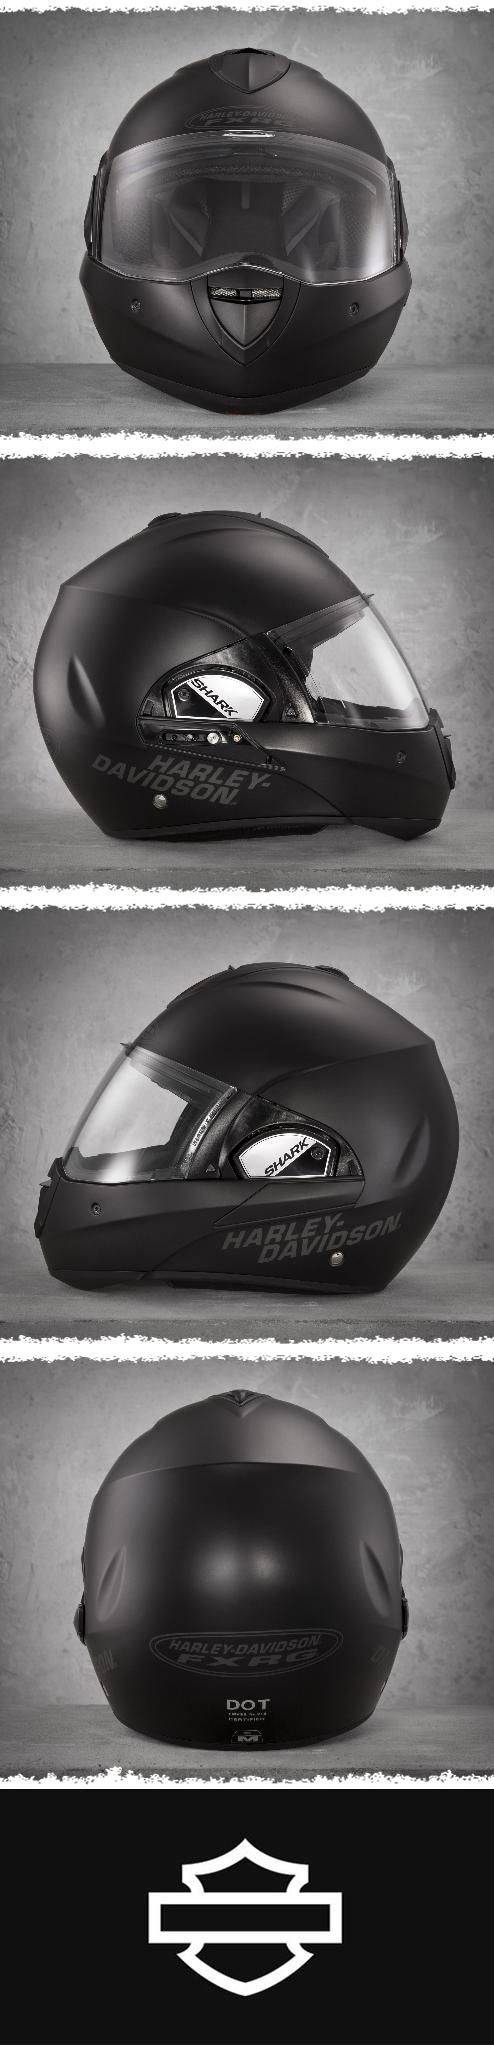 This full face helmet is one of our most exceptional offerings with an extensive list of innovations including the first time ever offering a helmet that converts from a full-face to an open-face. | Harley-Davidson Men's FXRG Dual-Homologated Helmet with Integrated Sun Shield